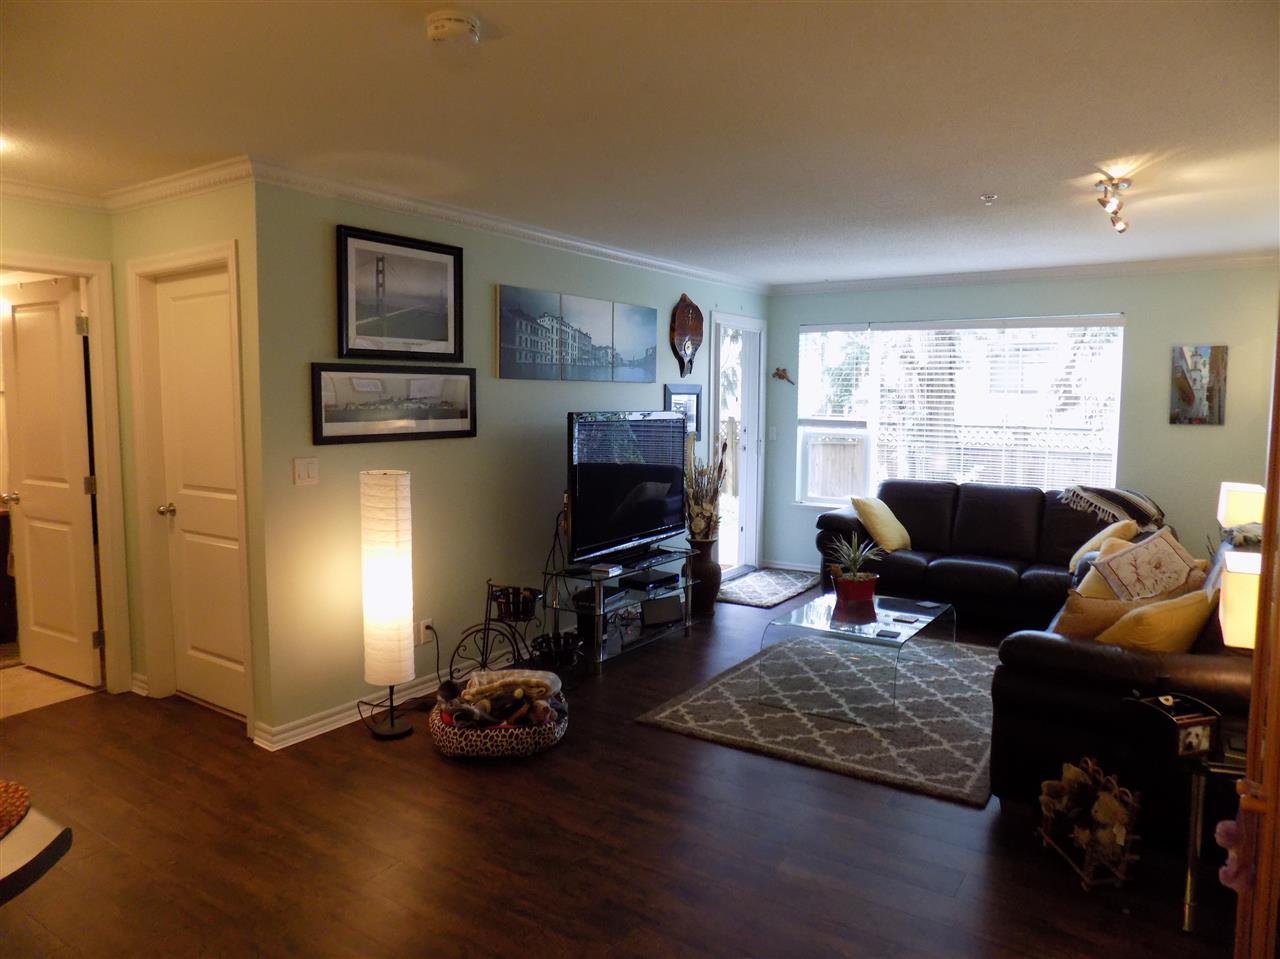 """Photo 6: Photos: 111 2581 LANGDON Street in Abbotsford: Abbotsford West Condo for sale in """"COBBLESTONE"""" : MLS®# R2258869"""